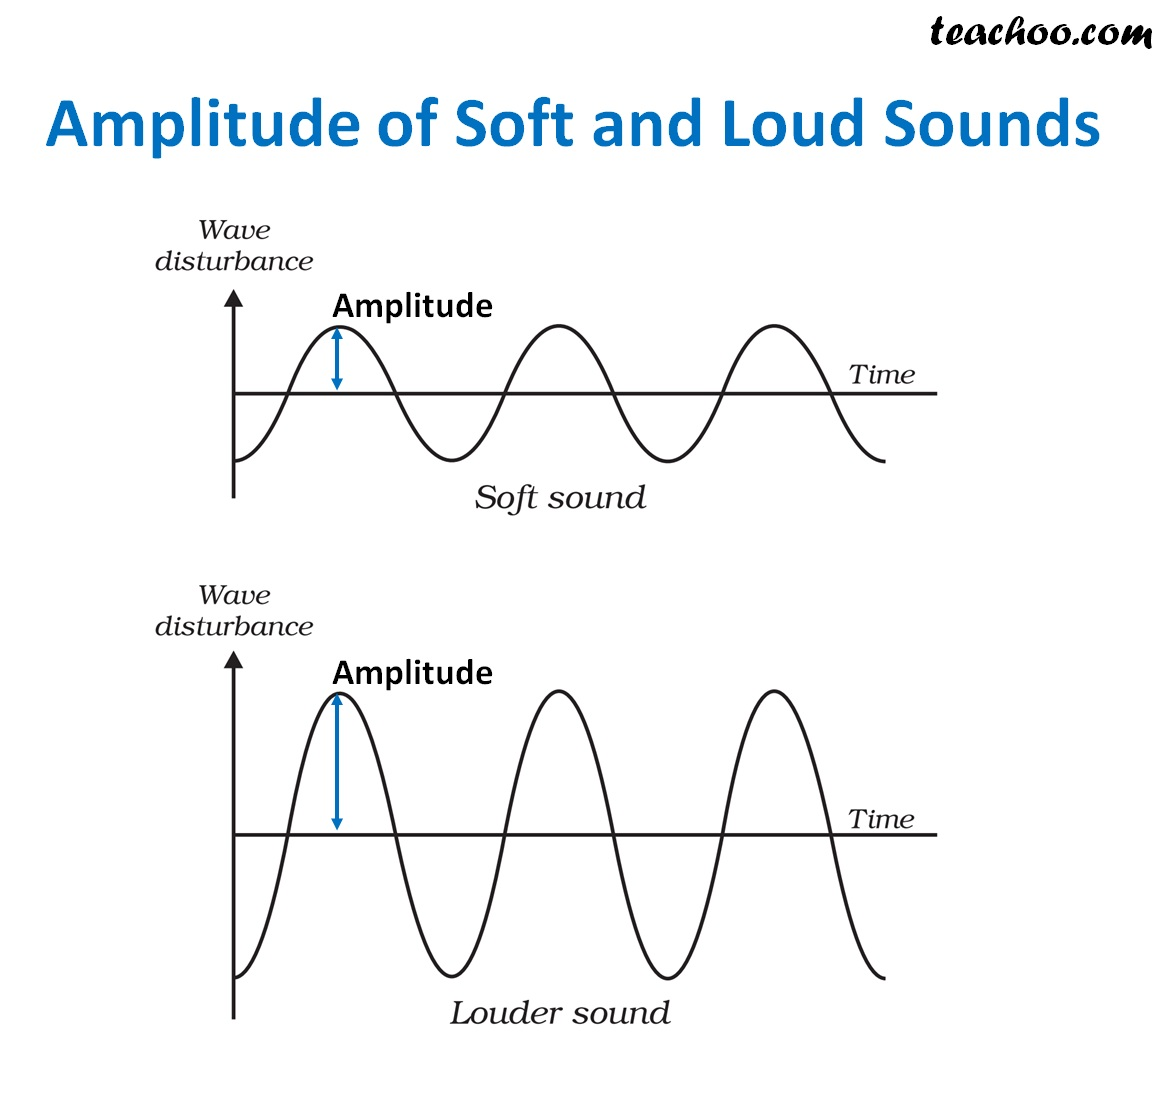 Amplitude of soft and loud sounds.jpg